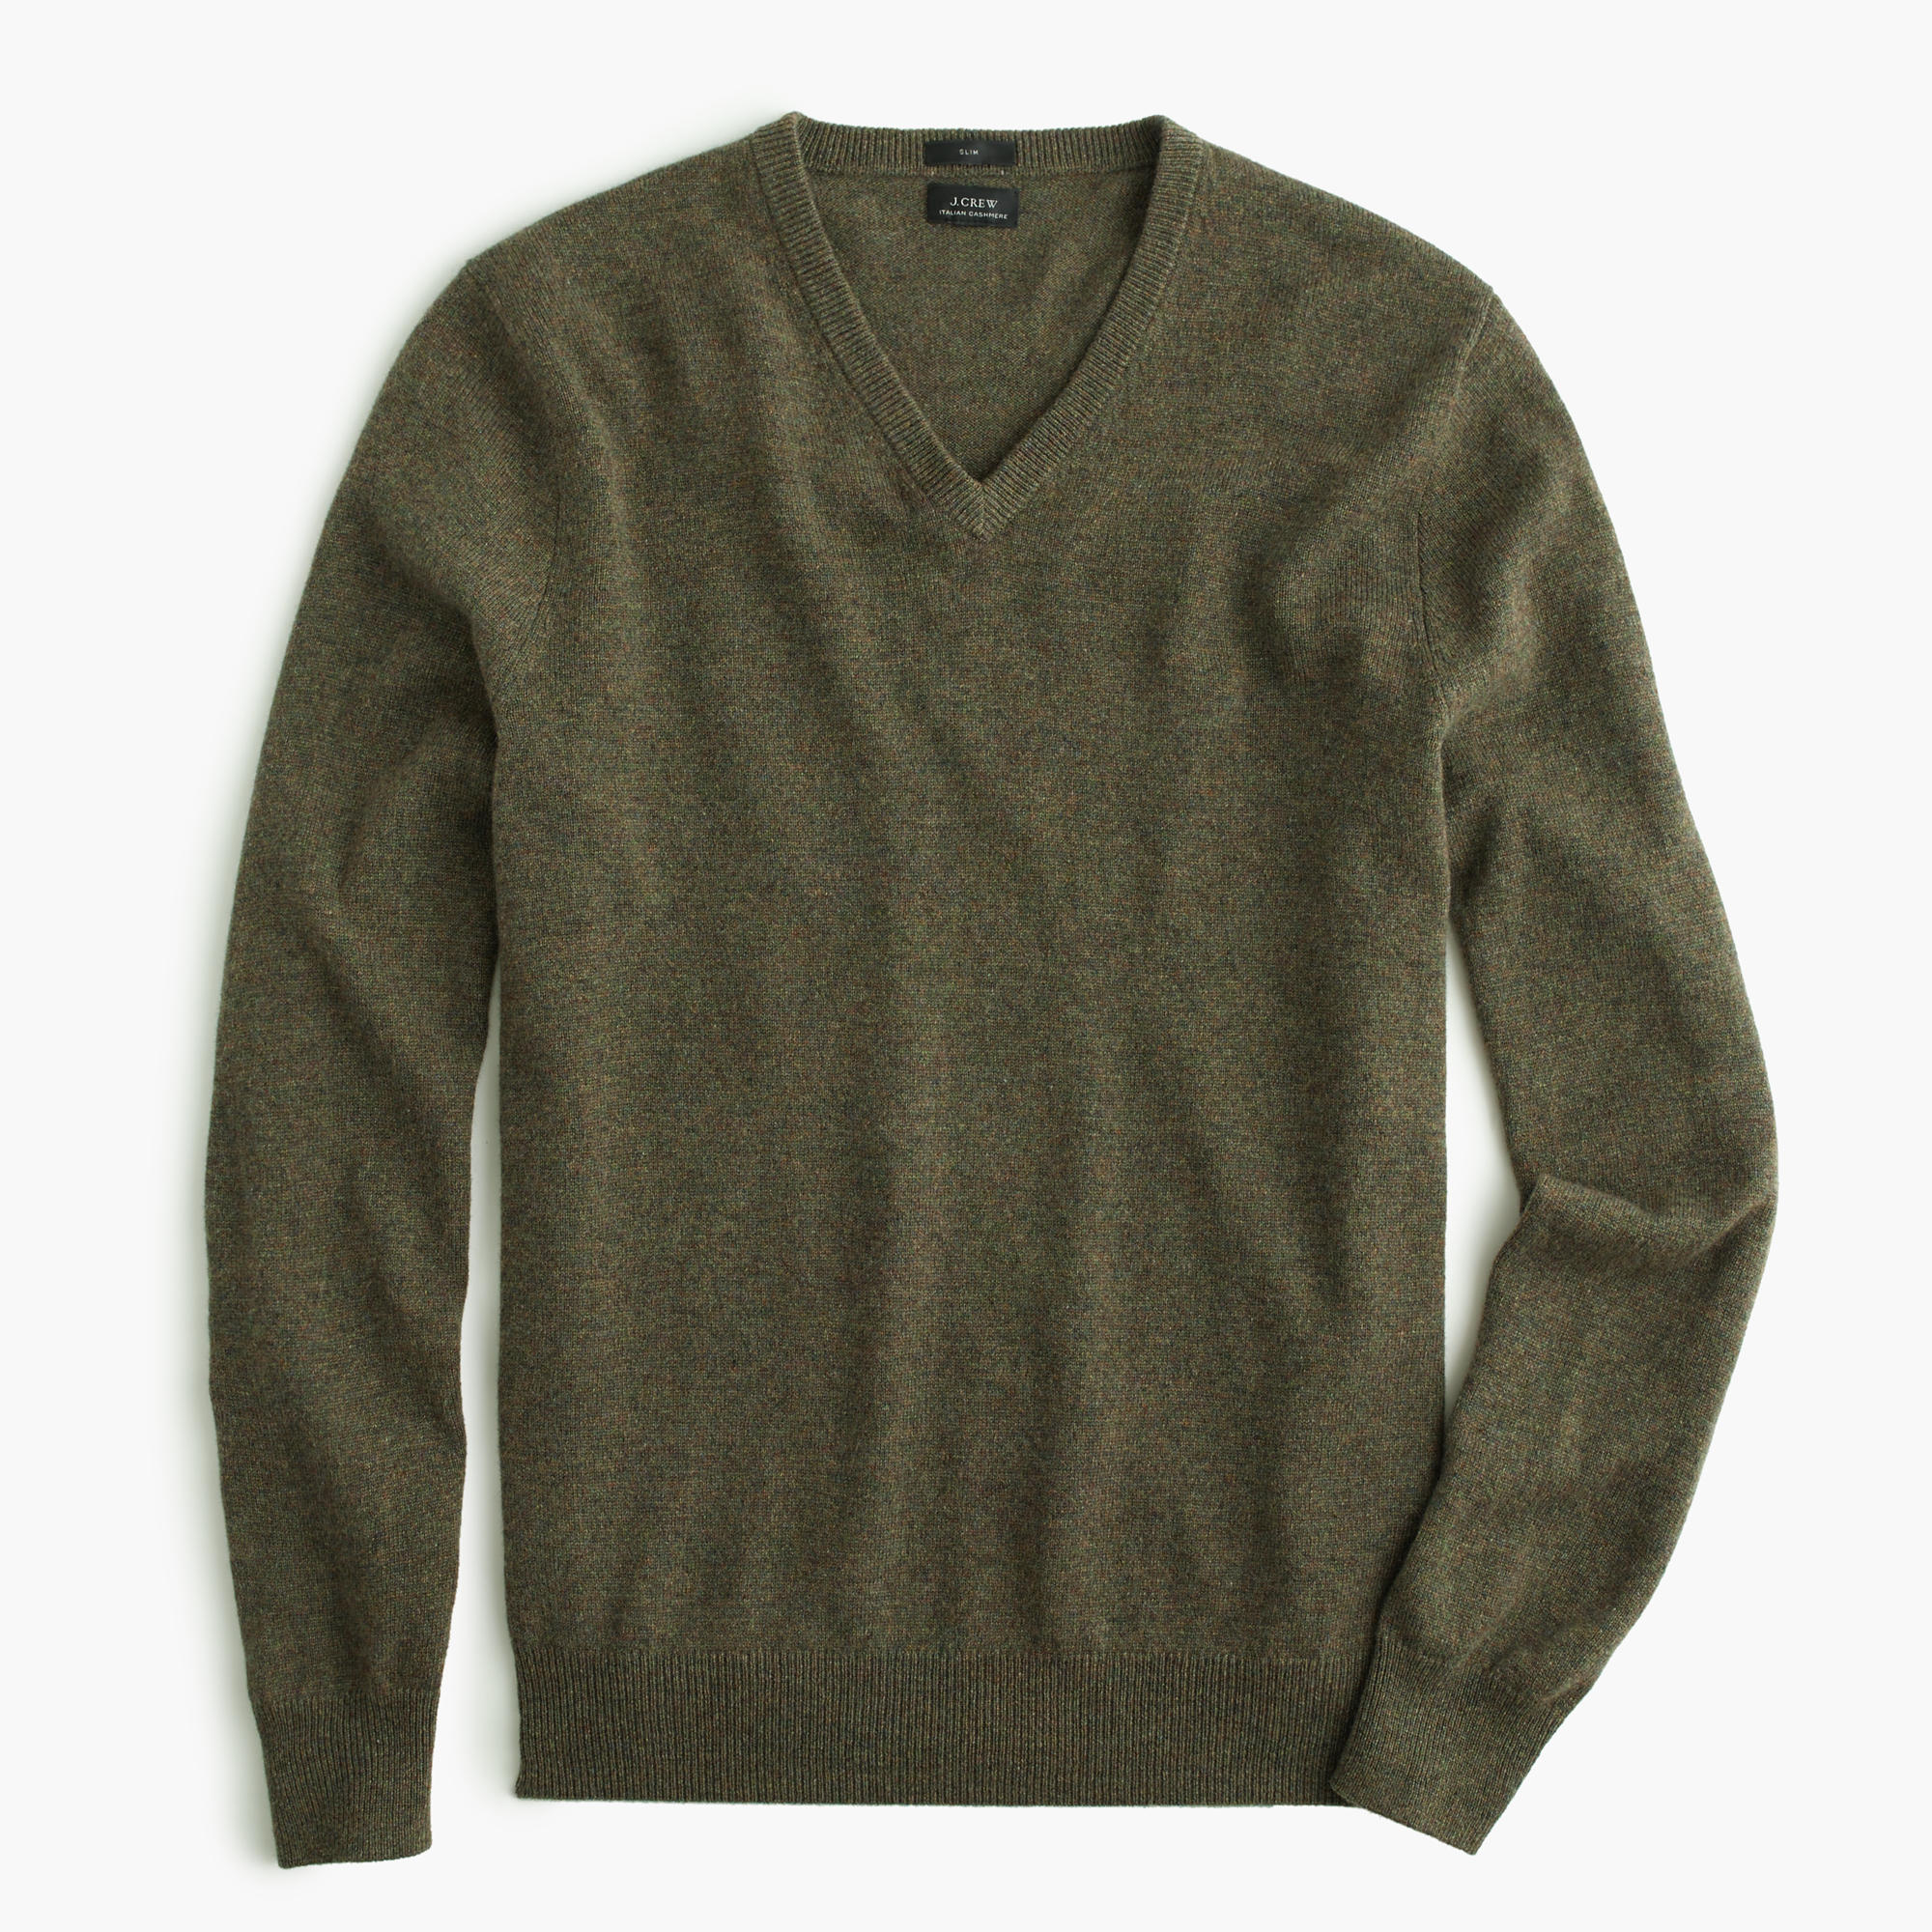 J.CREW SLIM ITALIAN CASHMERE V-NECK SWEATER $225